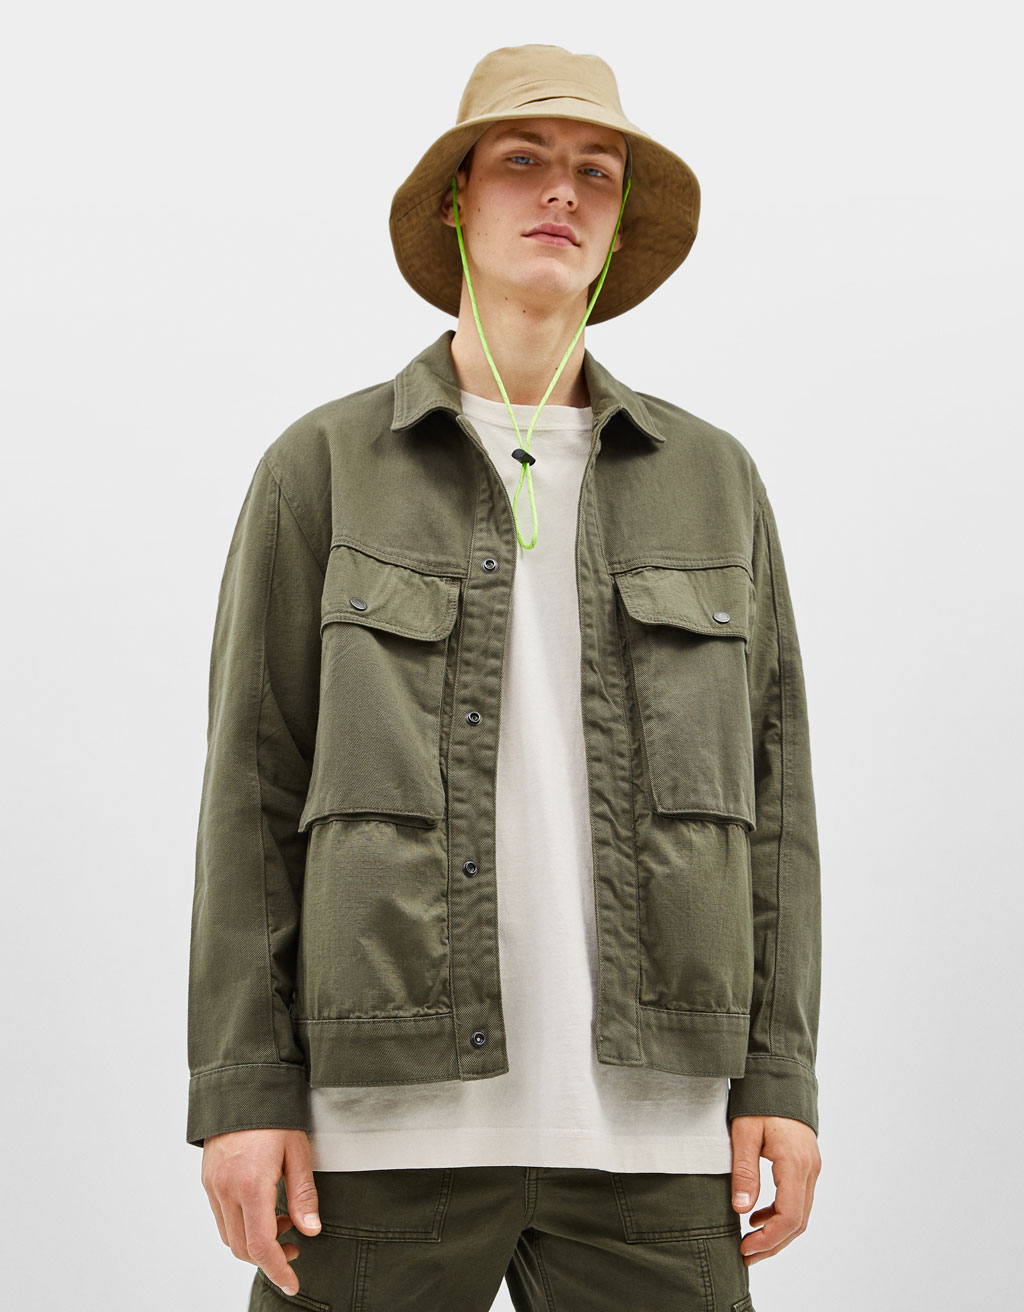 Utility jacket with pockets